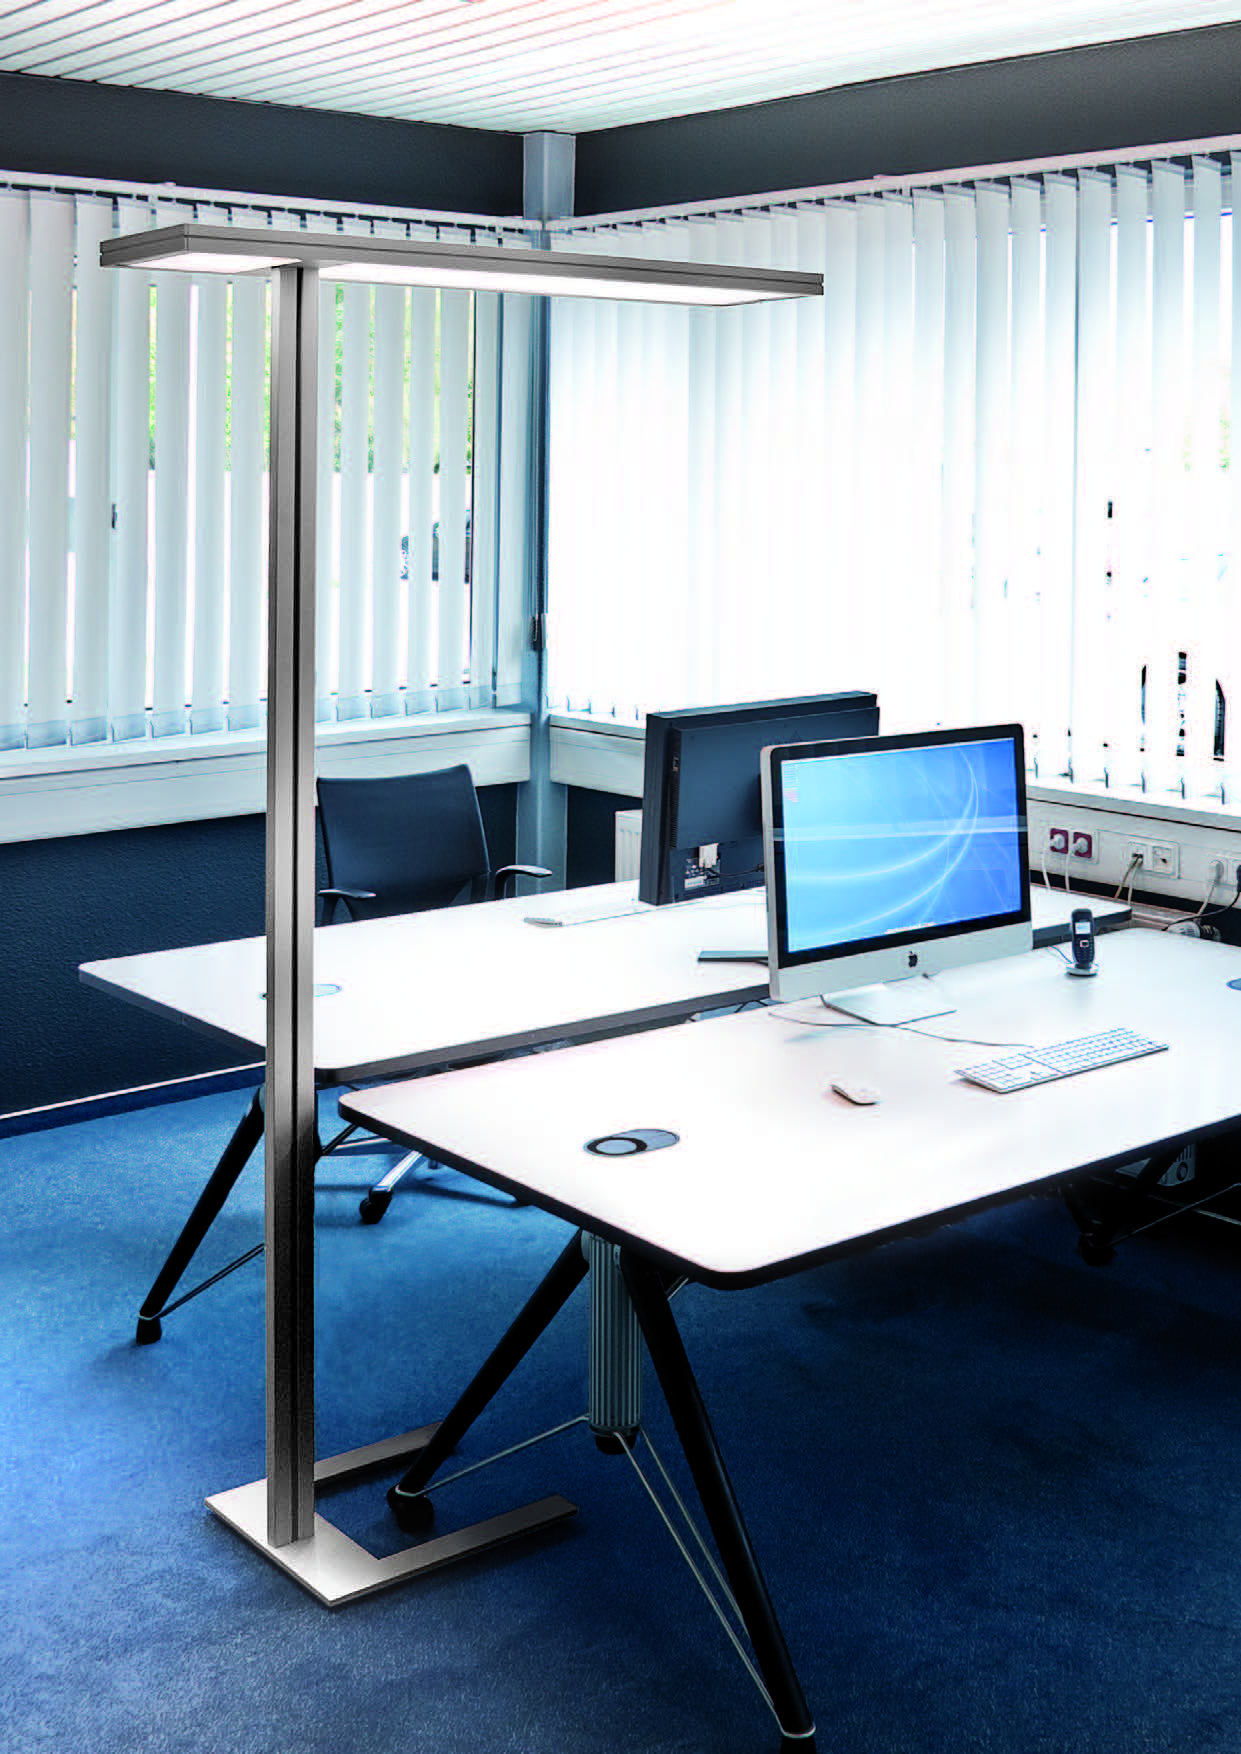 indirectdirect task lighting from a floormounted fixture a good choice for office d24 office